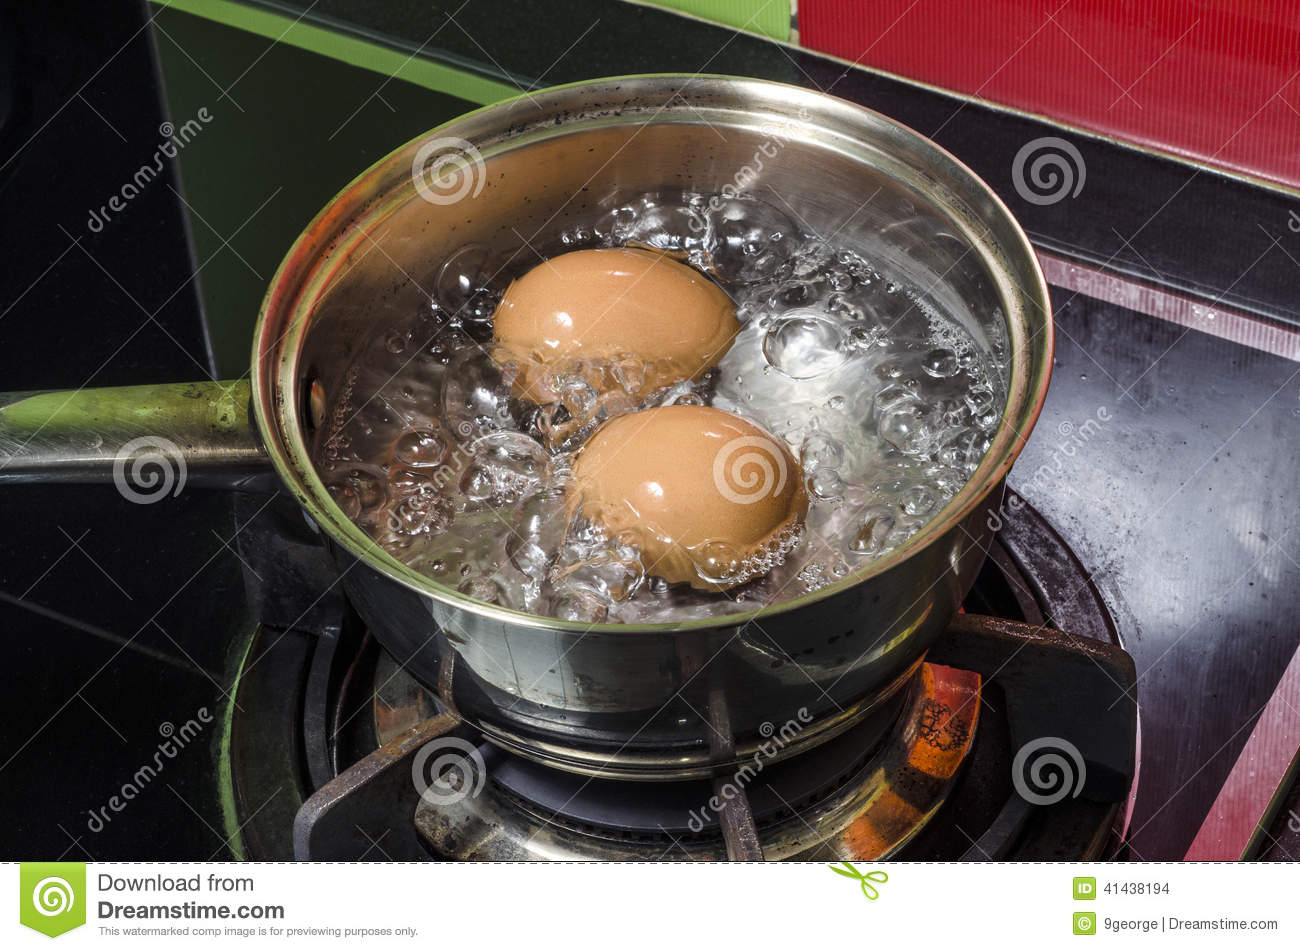 Steam, eggs and boiling water.